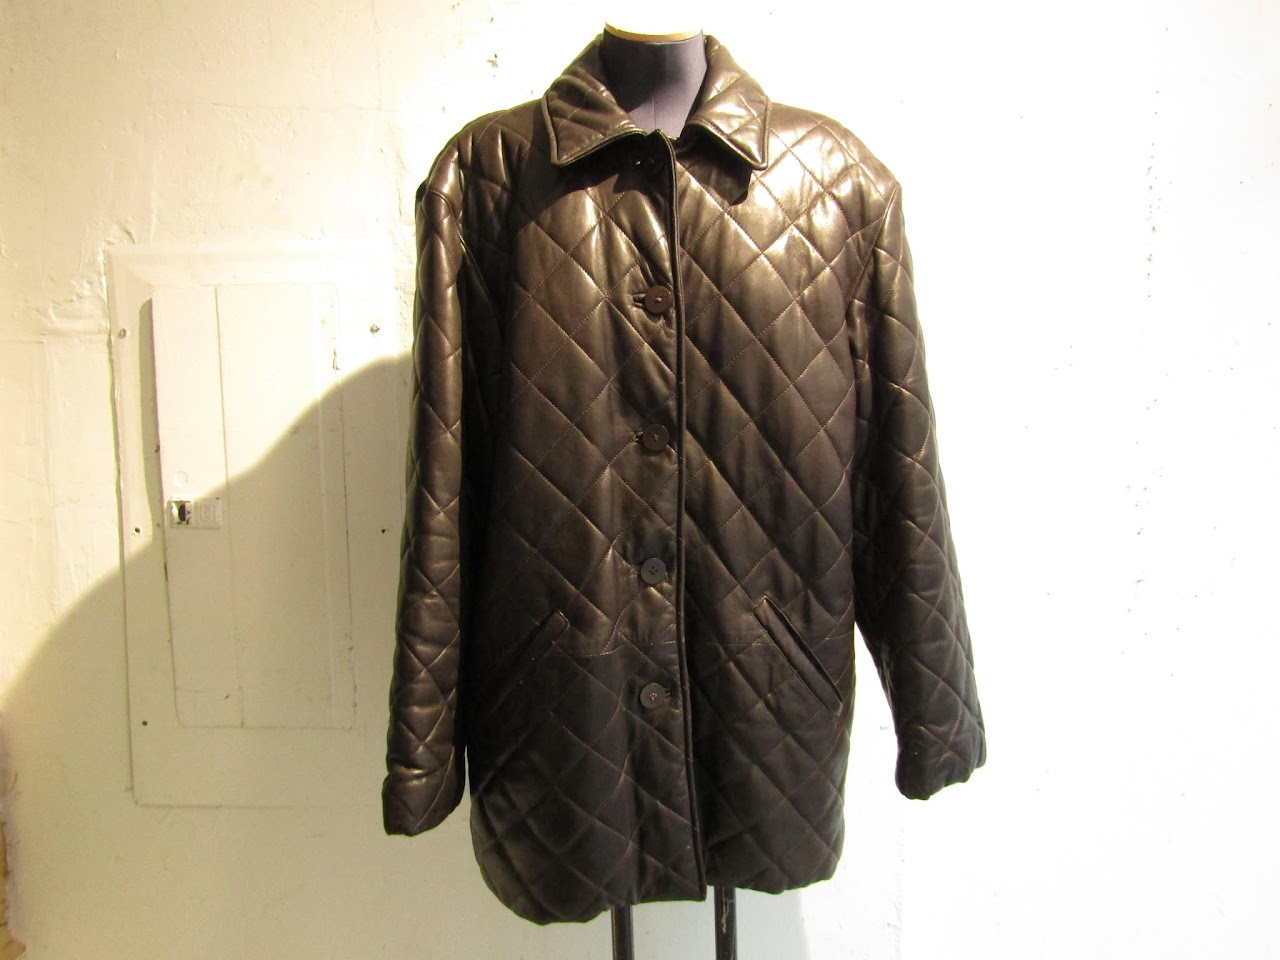 Vintage Burberry Quilted Leather Jacket